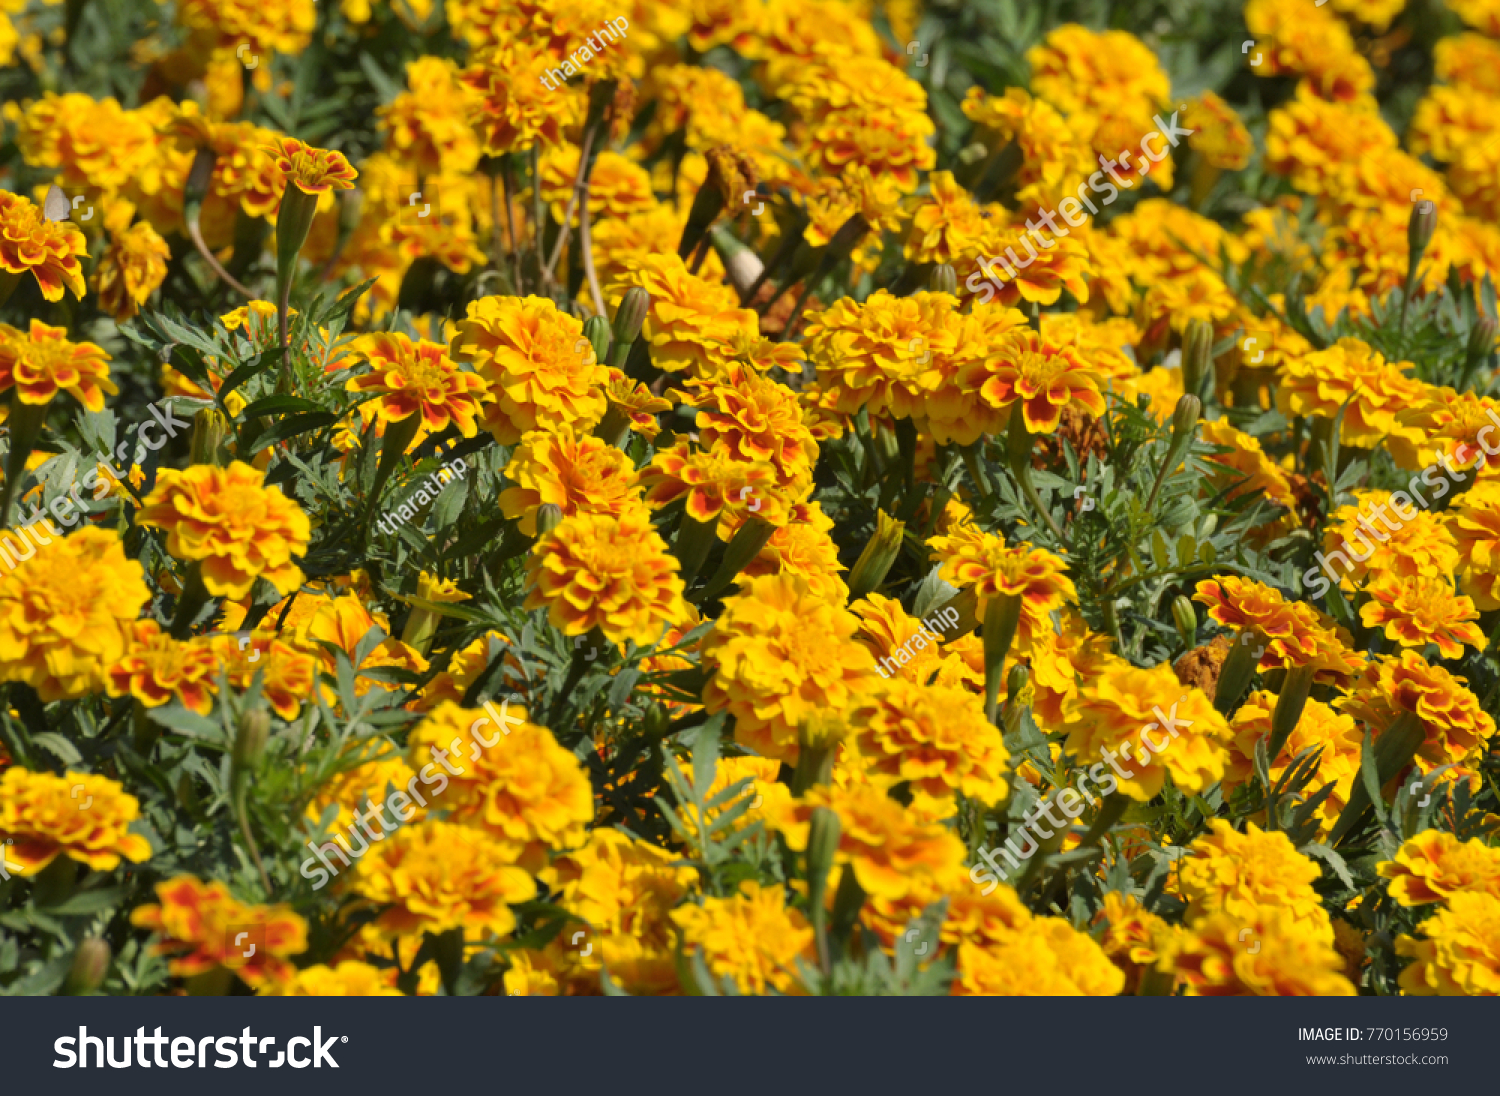 Marigold Yellow Color In Many Flowers Plantllow And Orange